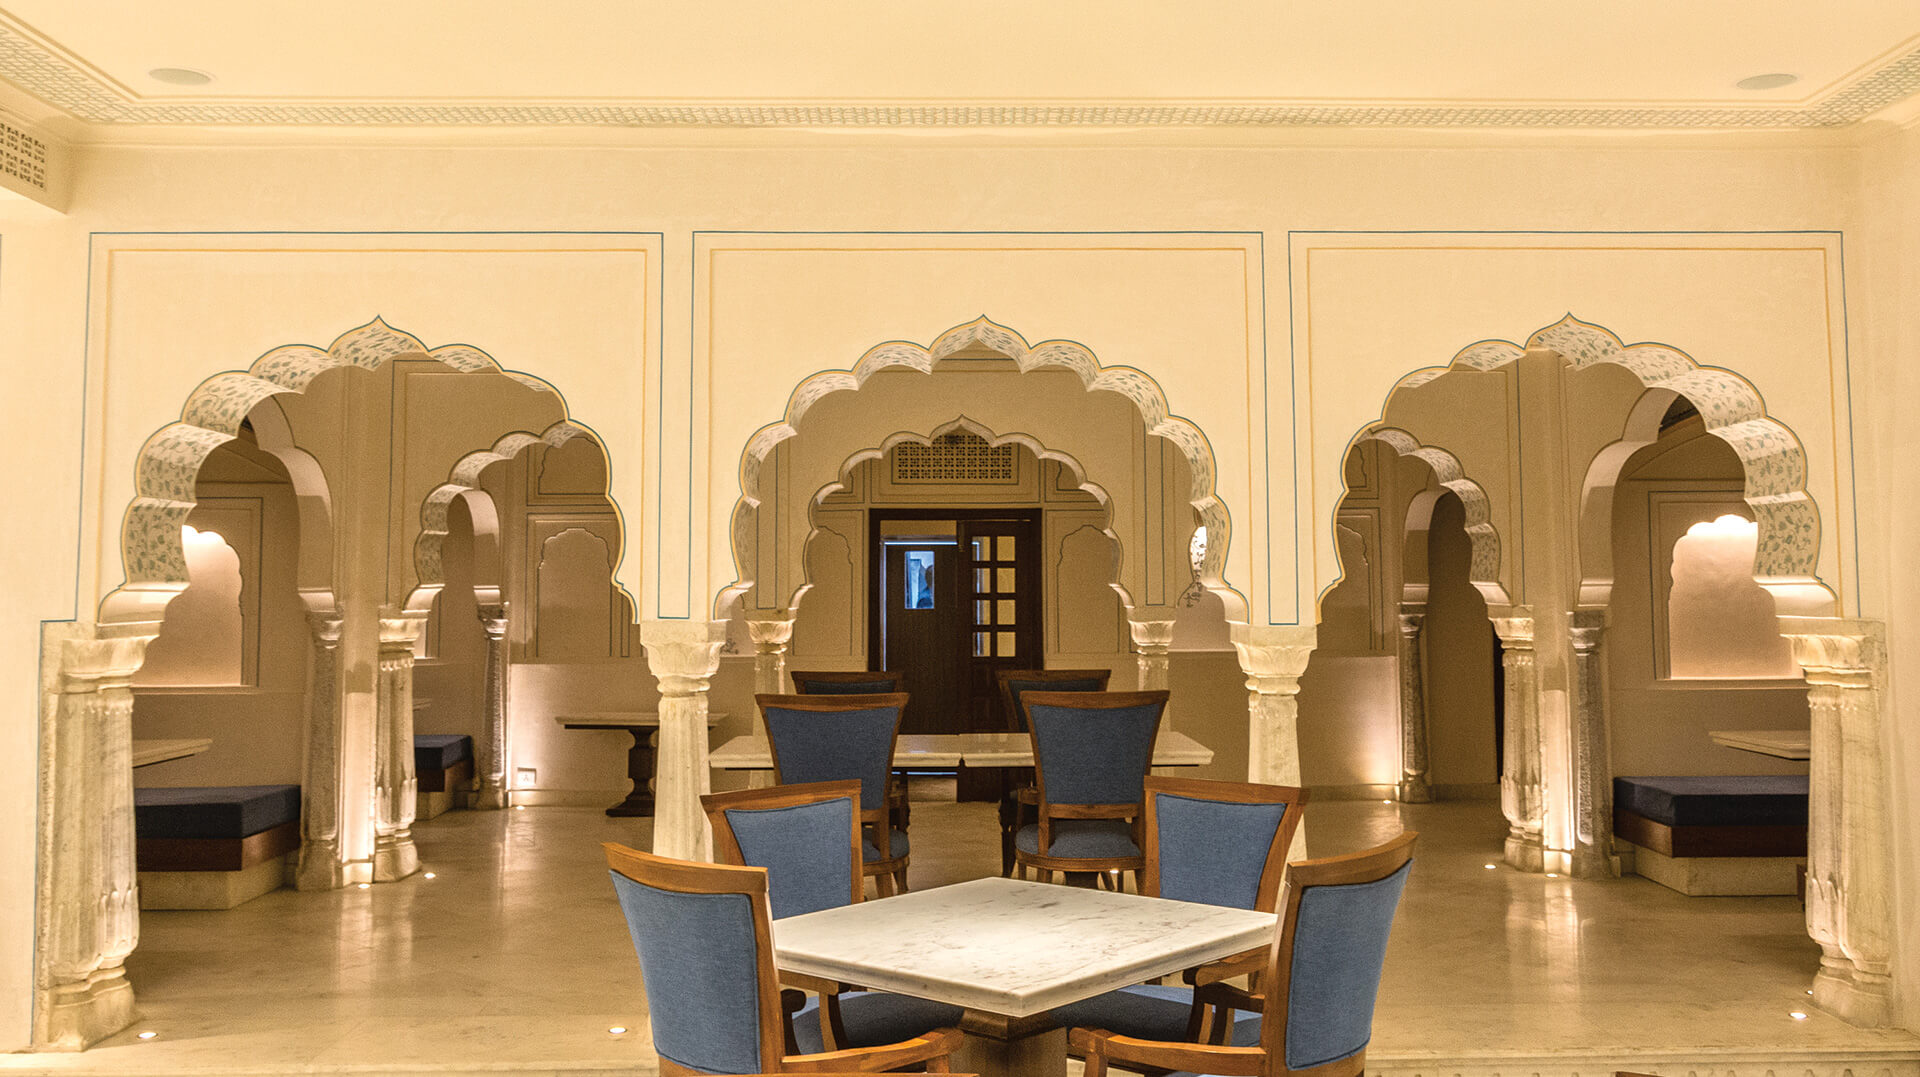 Cusped arch inspired by the Jaipur Gharana architecture | Alila Bishangarh Fort |Sthapatya Architects | STIRworld